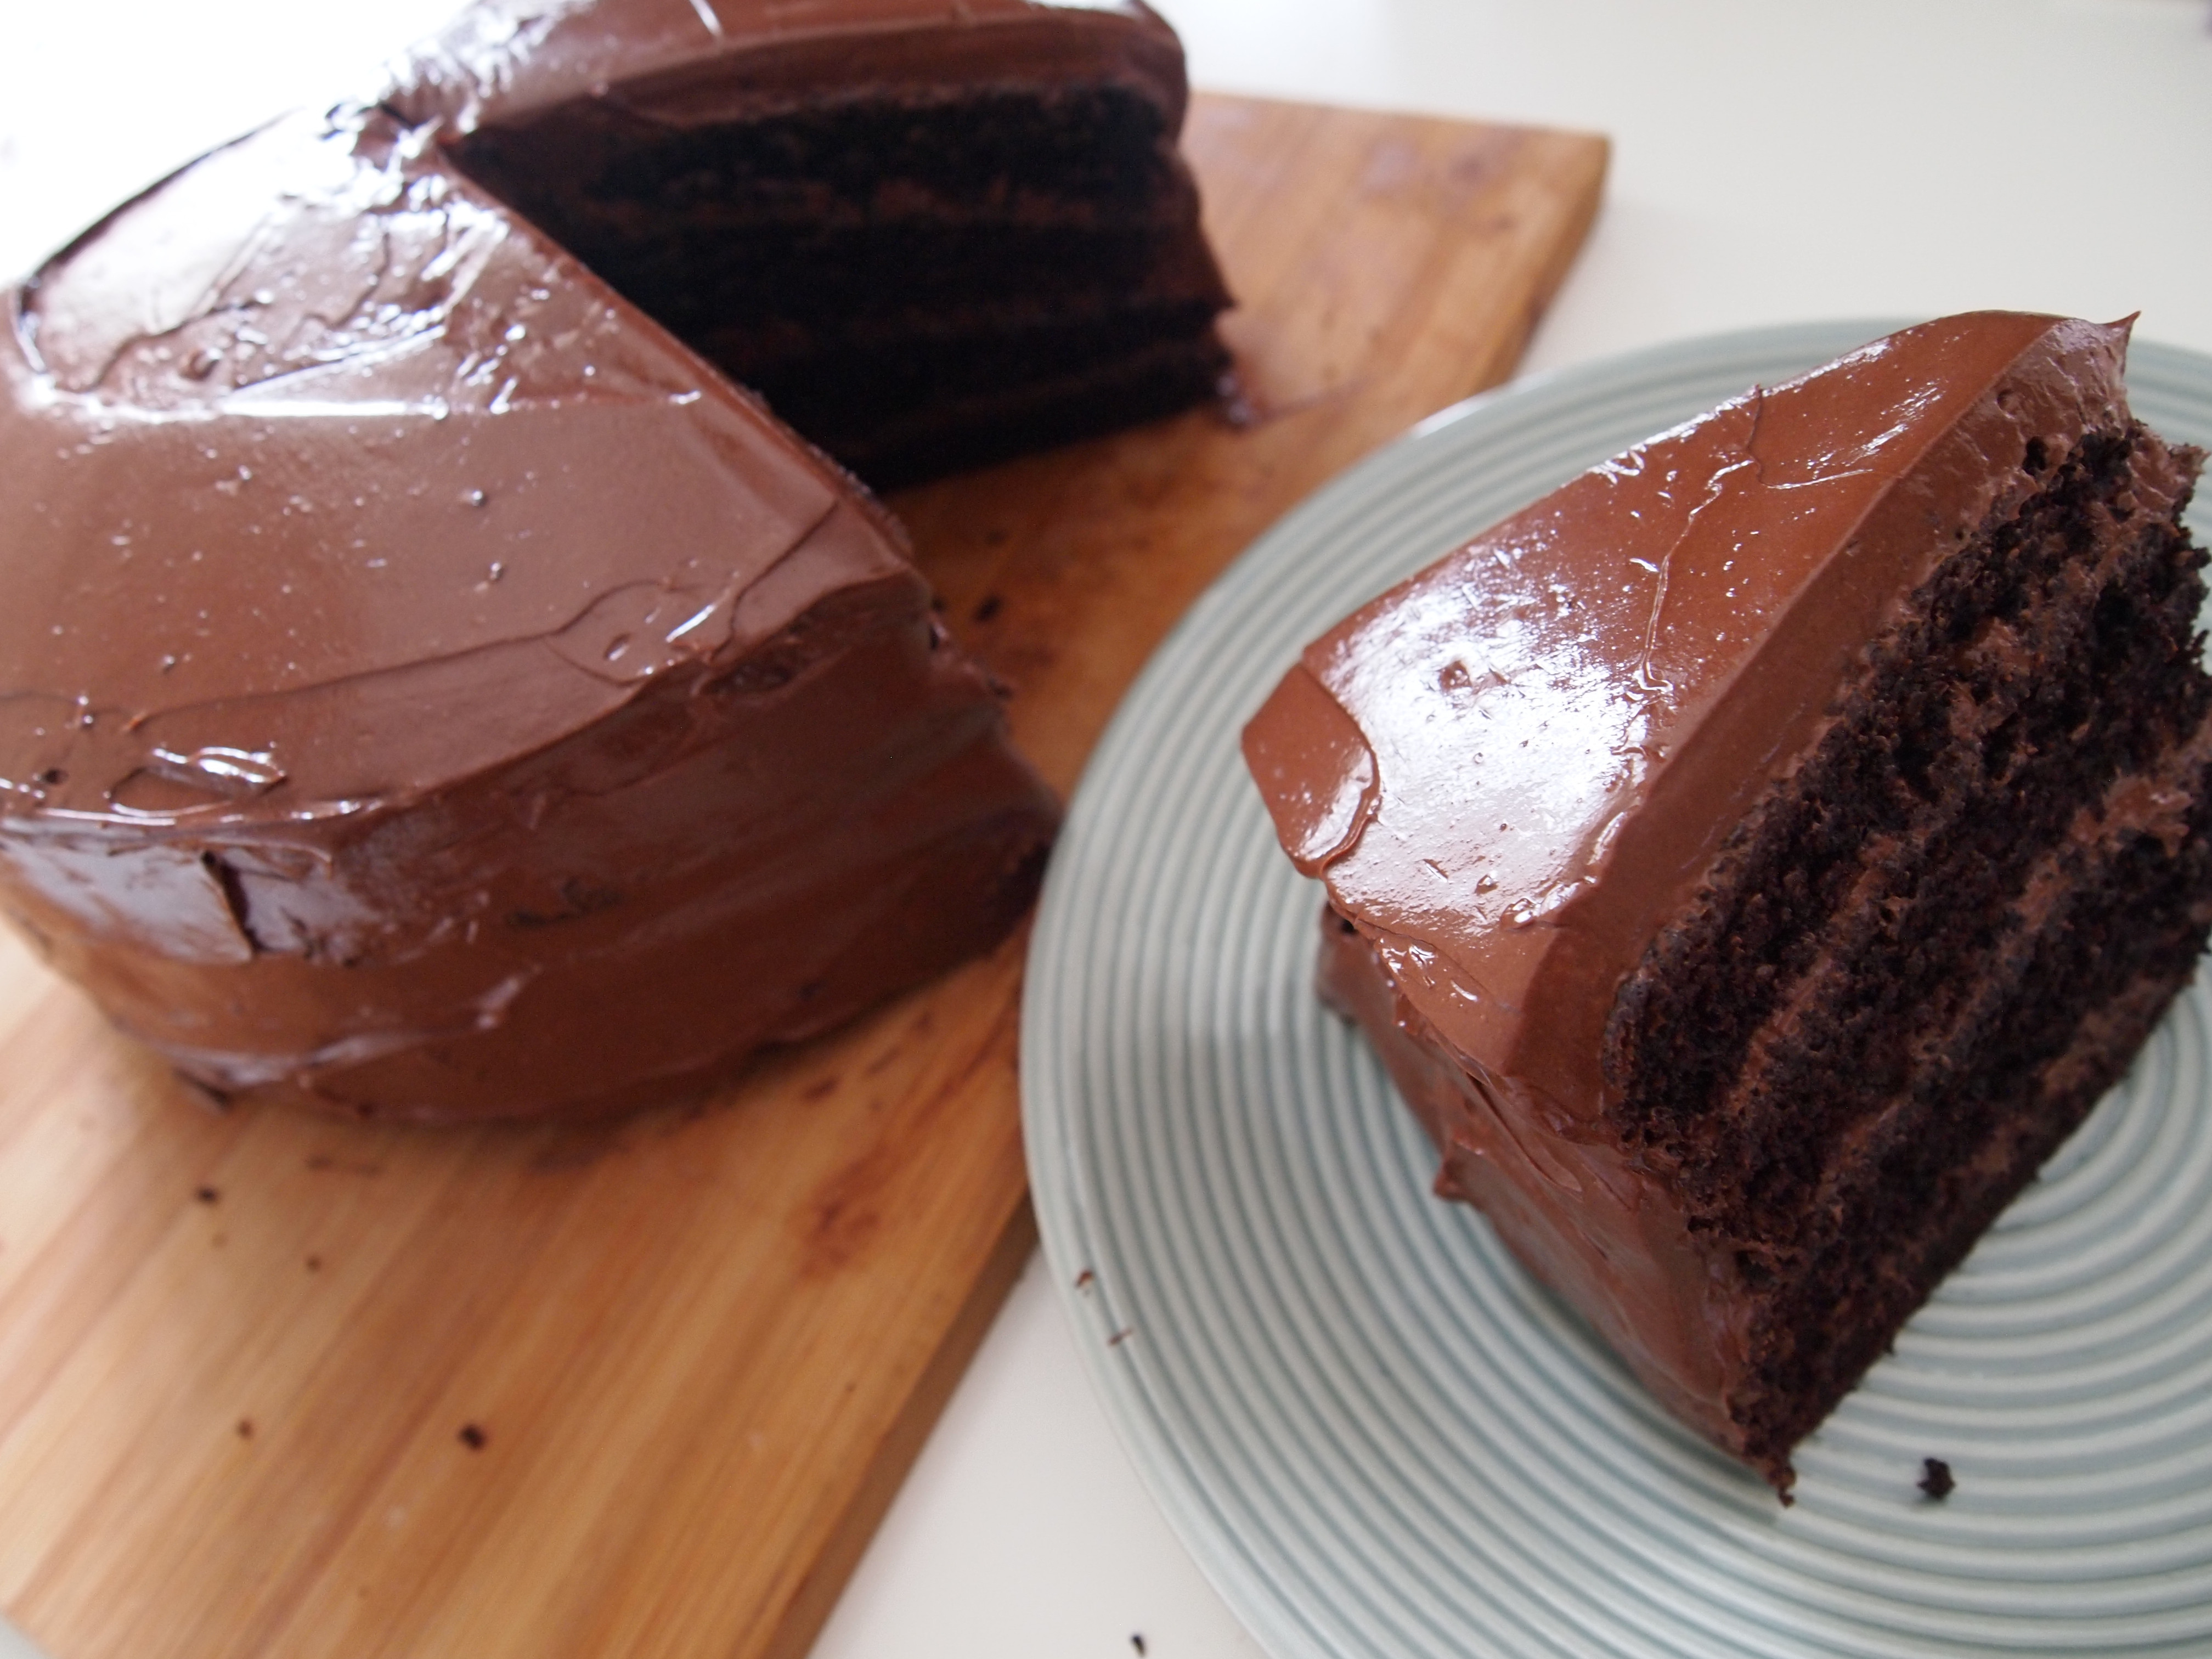 Best ideas about Chocolate Birthday Cake Recipes . Save or Pin The ly Chocolate Birthday Cake Recipe You Ever Need Now.